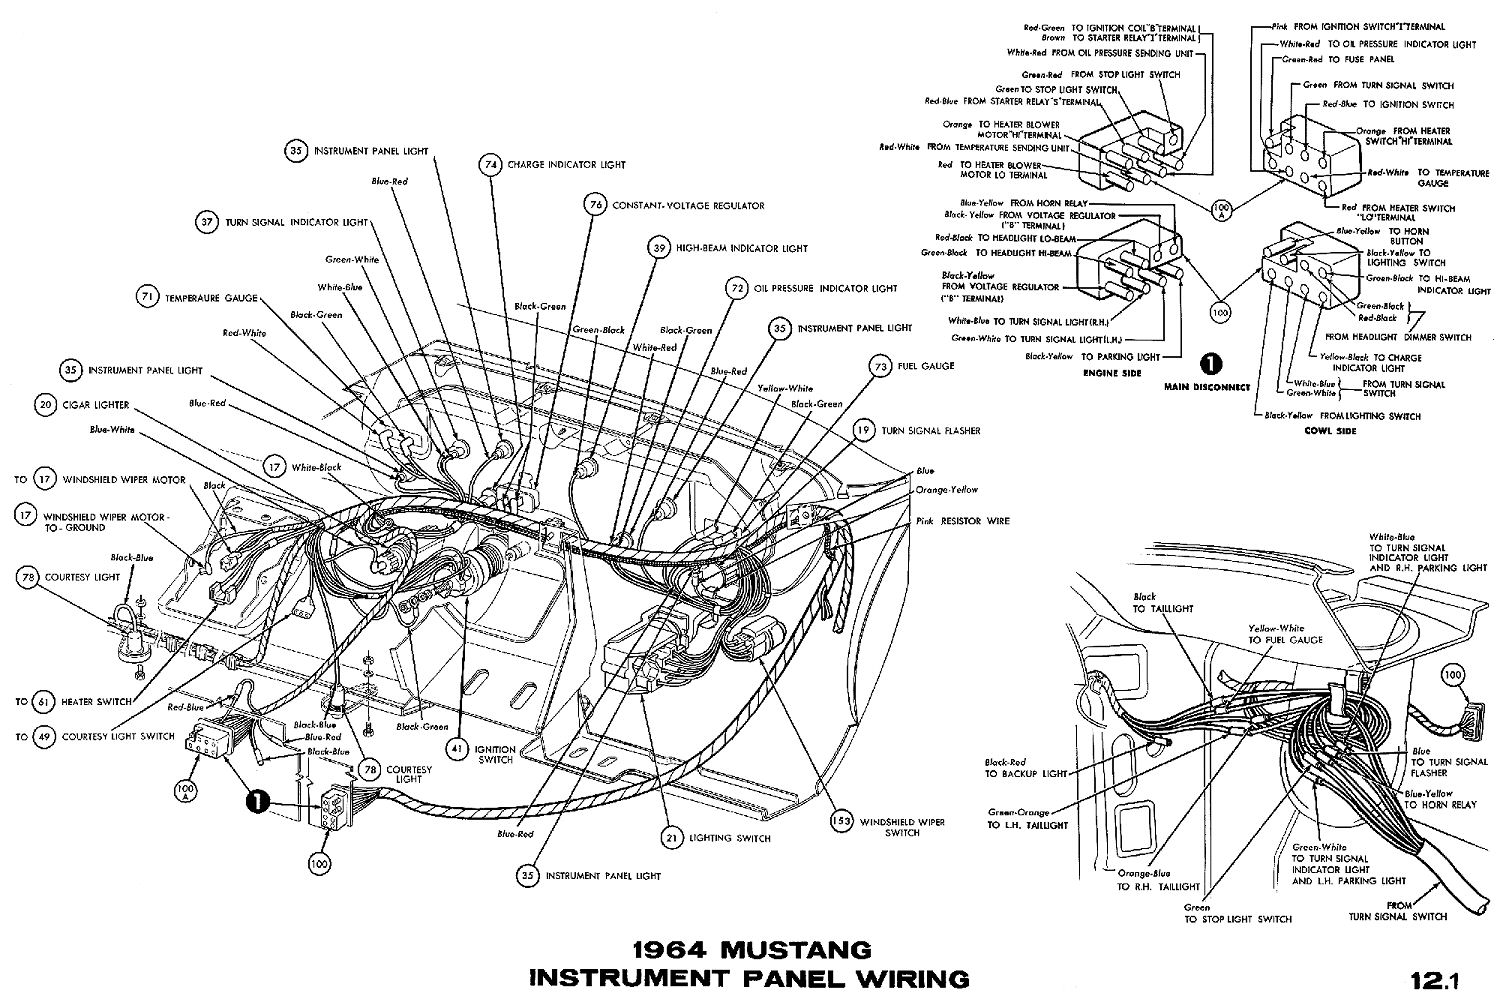 1964b 1969 mustang wiring diagram 2011 mustang wiring diagram \u2022 free  at webbmarketing.co